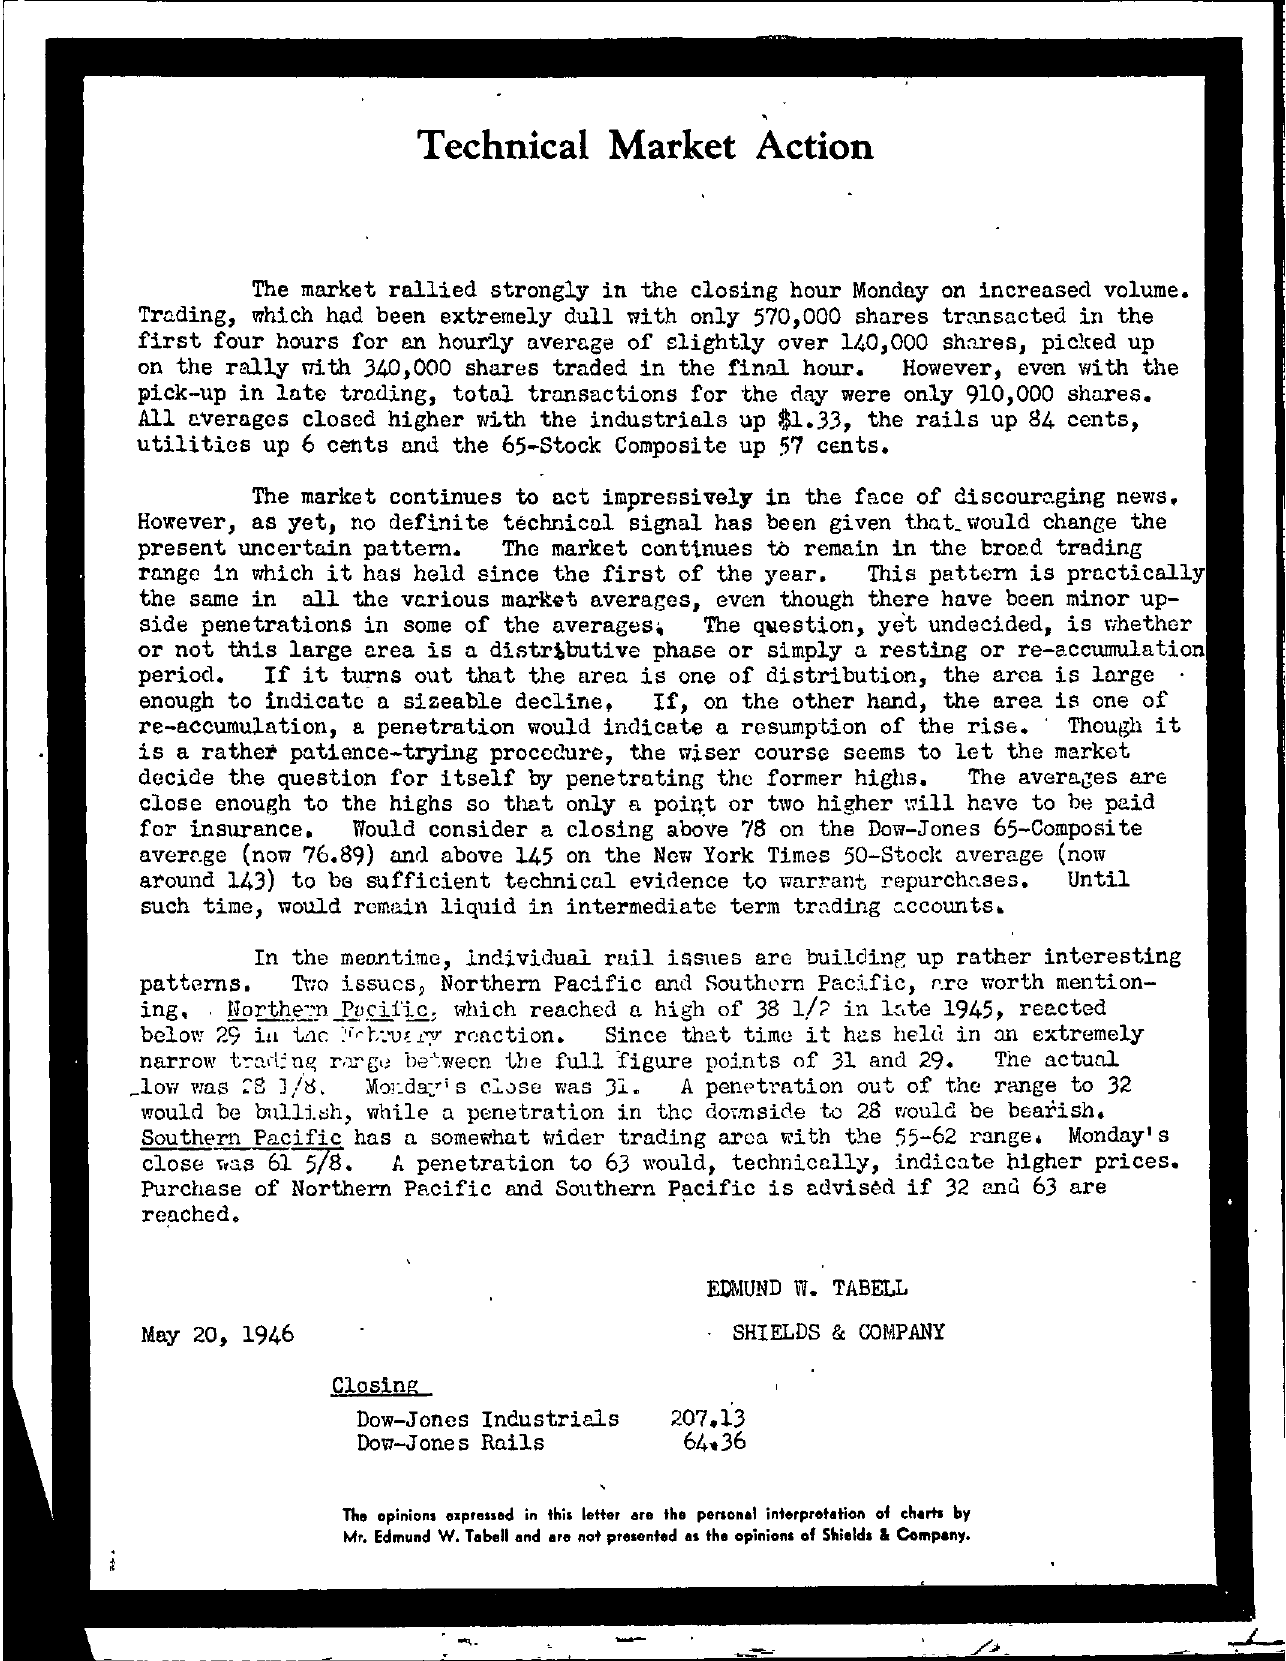 Tabell's Market Letter - May 20, 1946